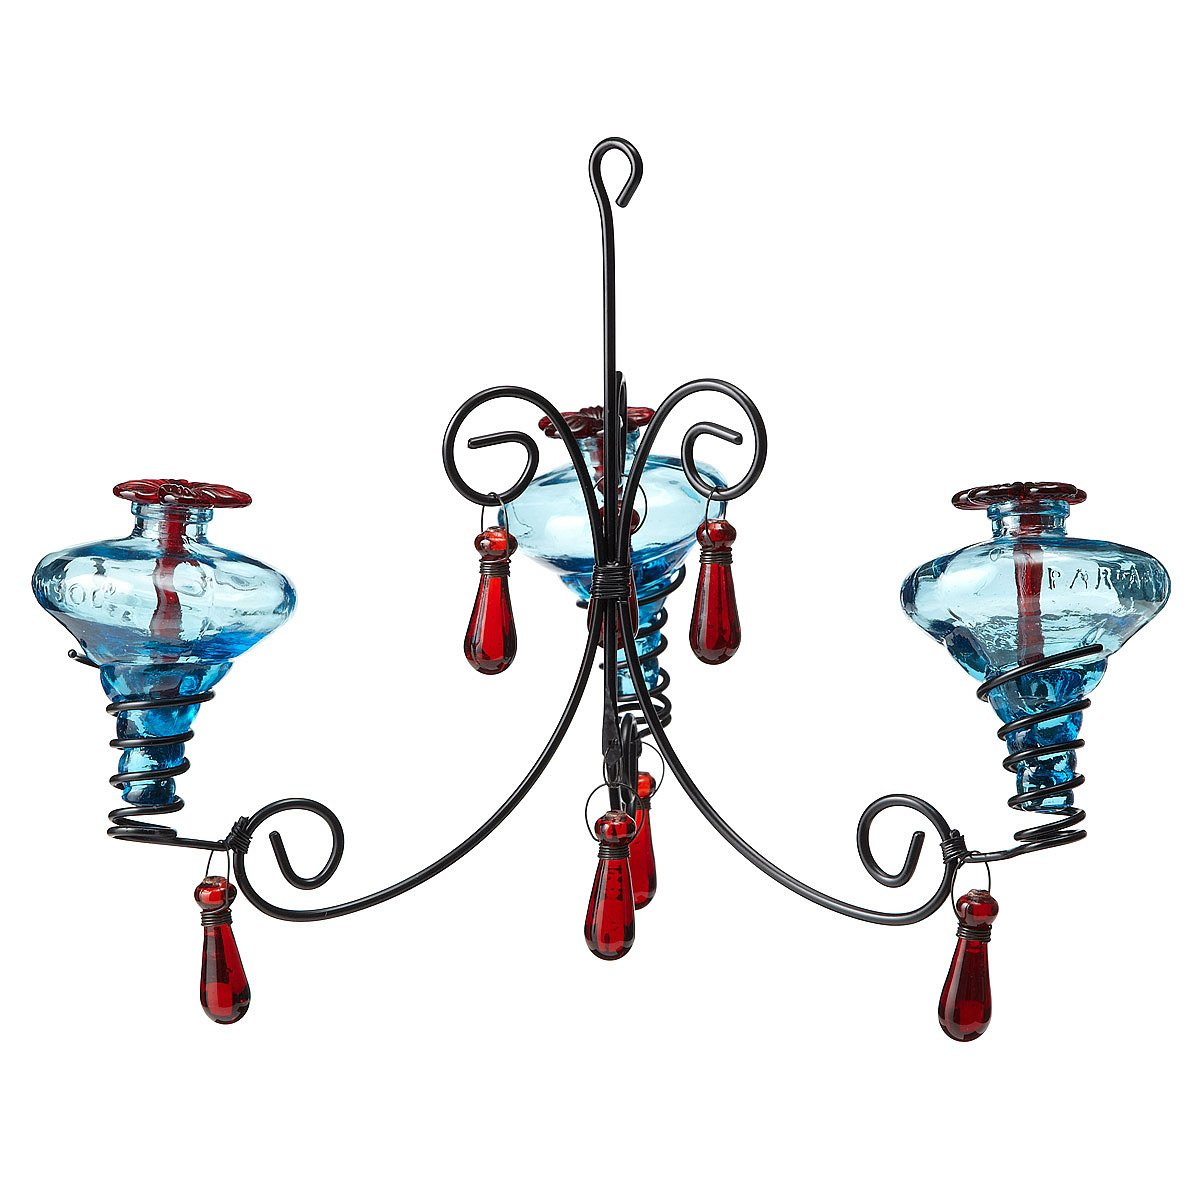 with uk fixtures pendant images recycled about framed shades chandelier charming astounding fixture bathroom glass mercury pics decorations prism photo on light diy lighting of